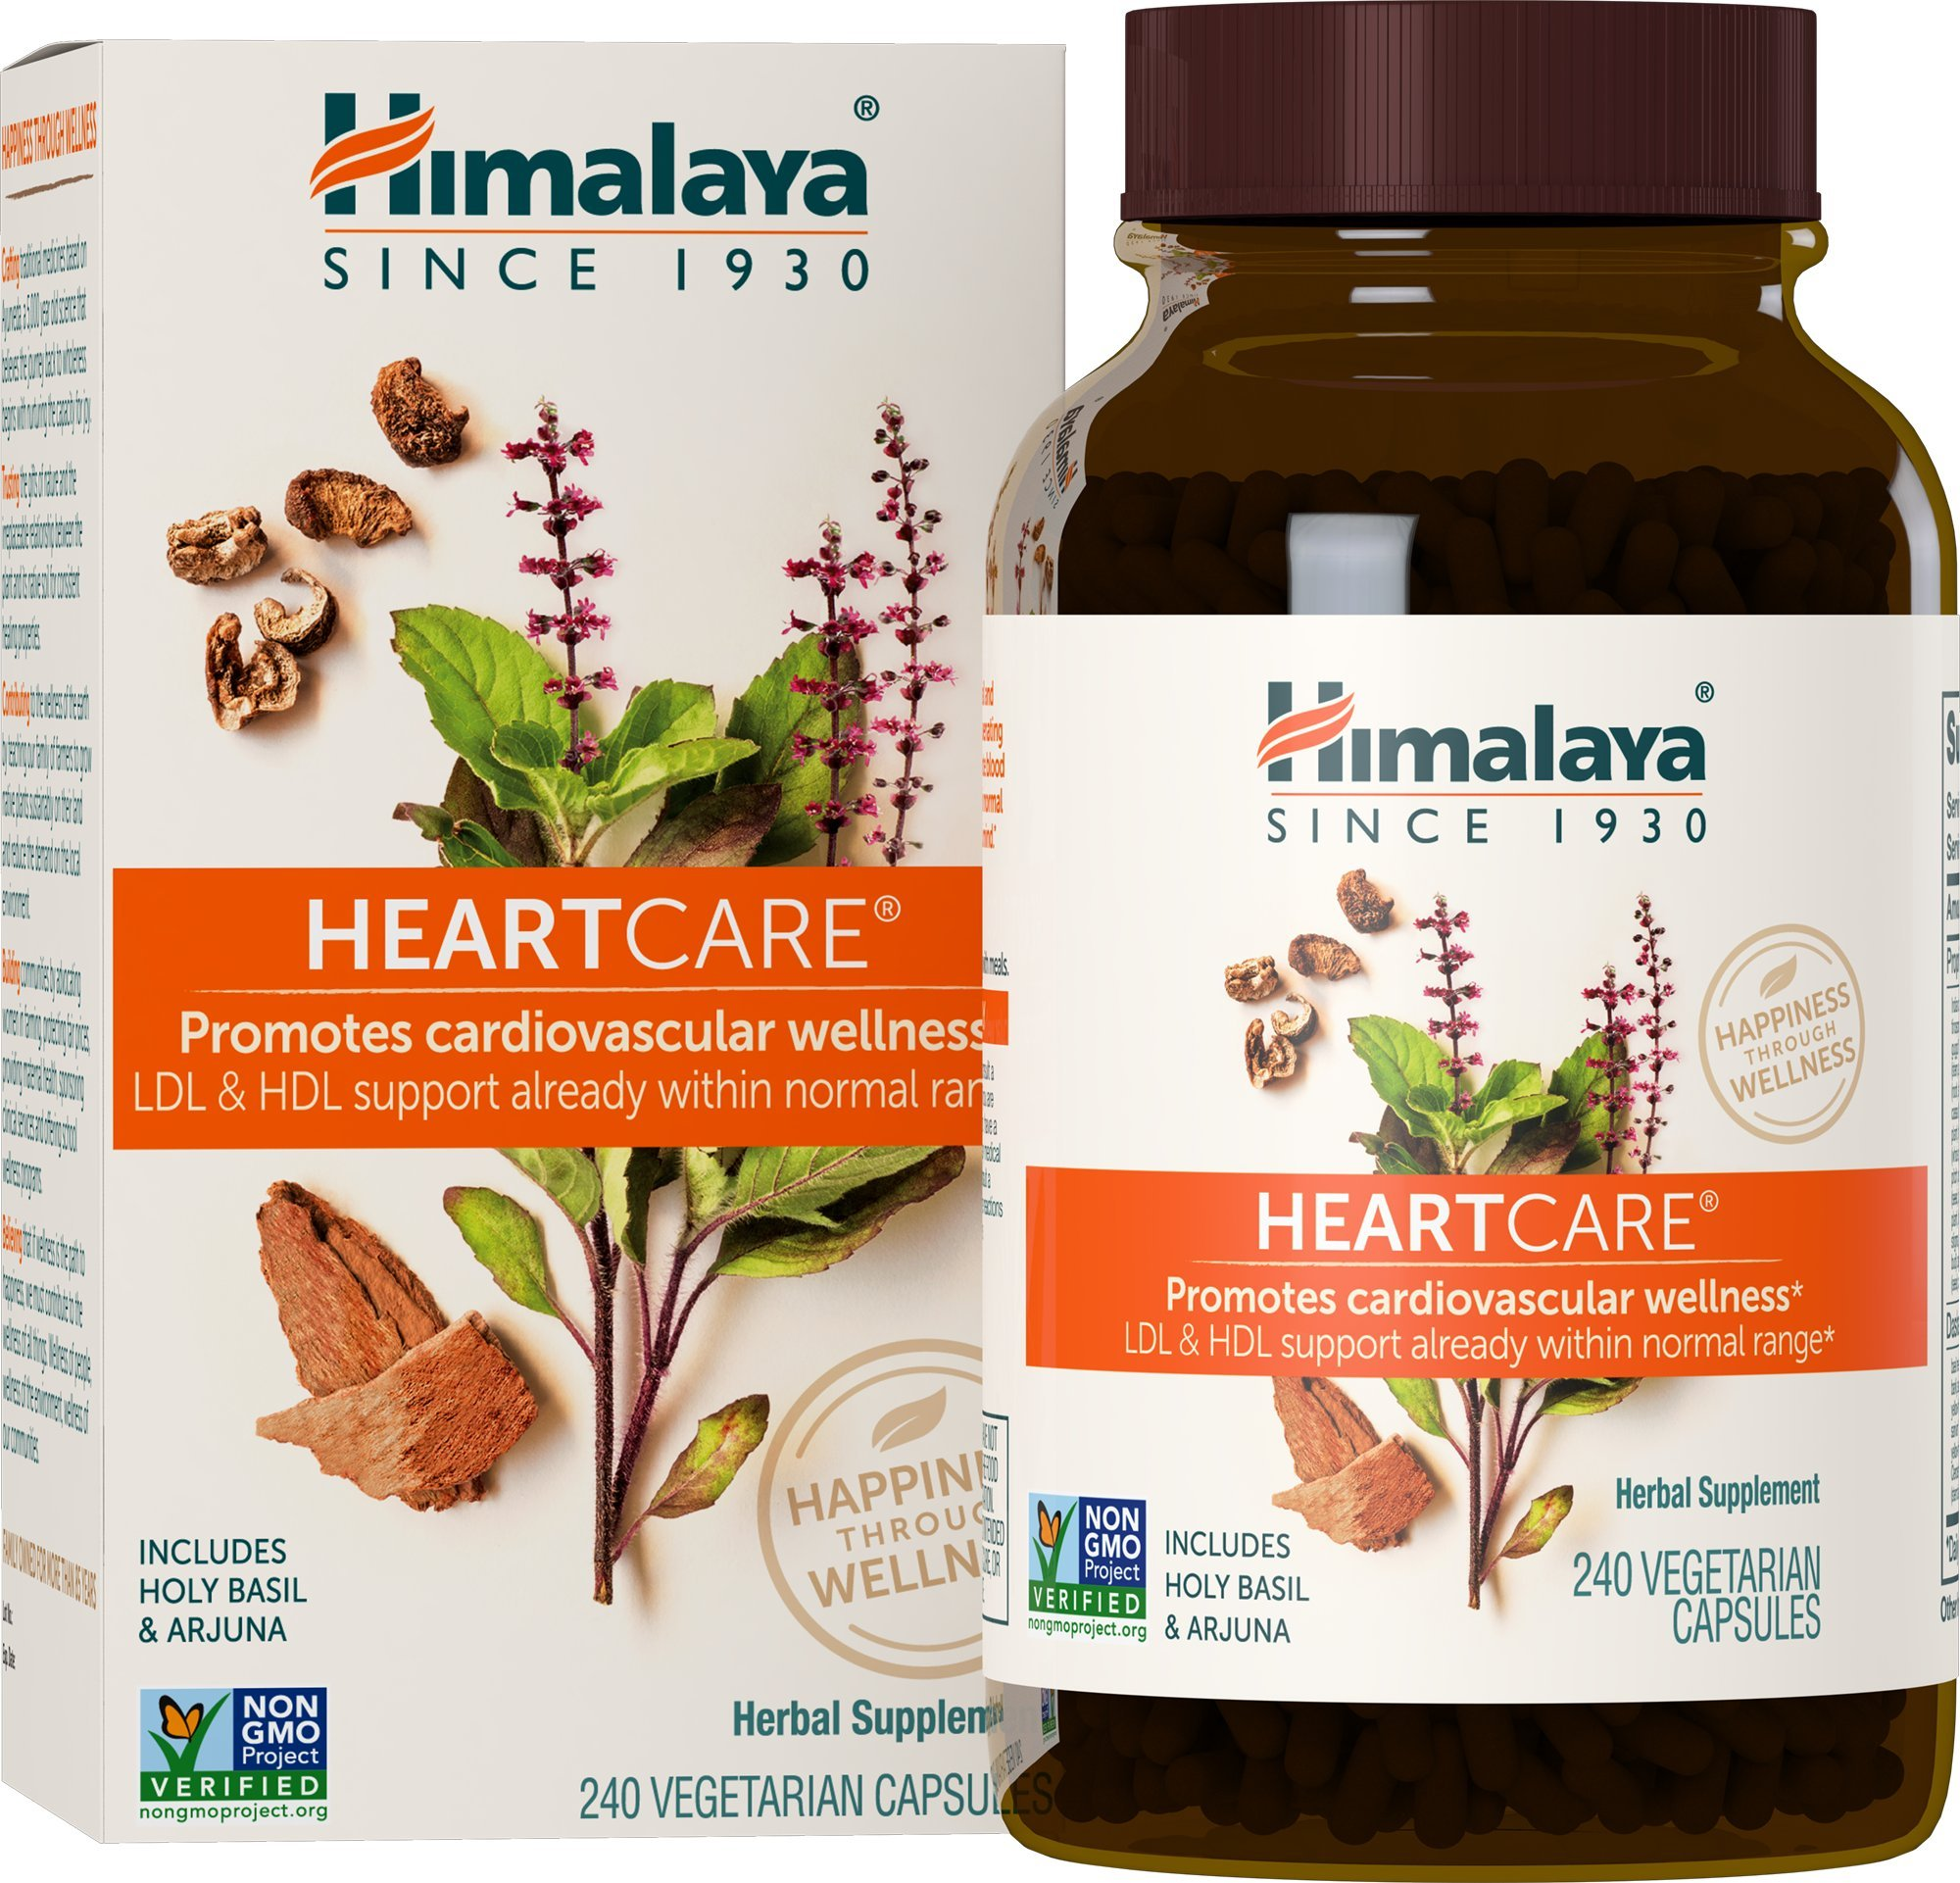 Himalaya HeartCare, Cholesterol and Blood Pressure Supplements for Cardiovascular Wellness and Heart Health, 720mg, 240 Capsules, 2 Month Supply